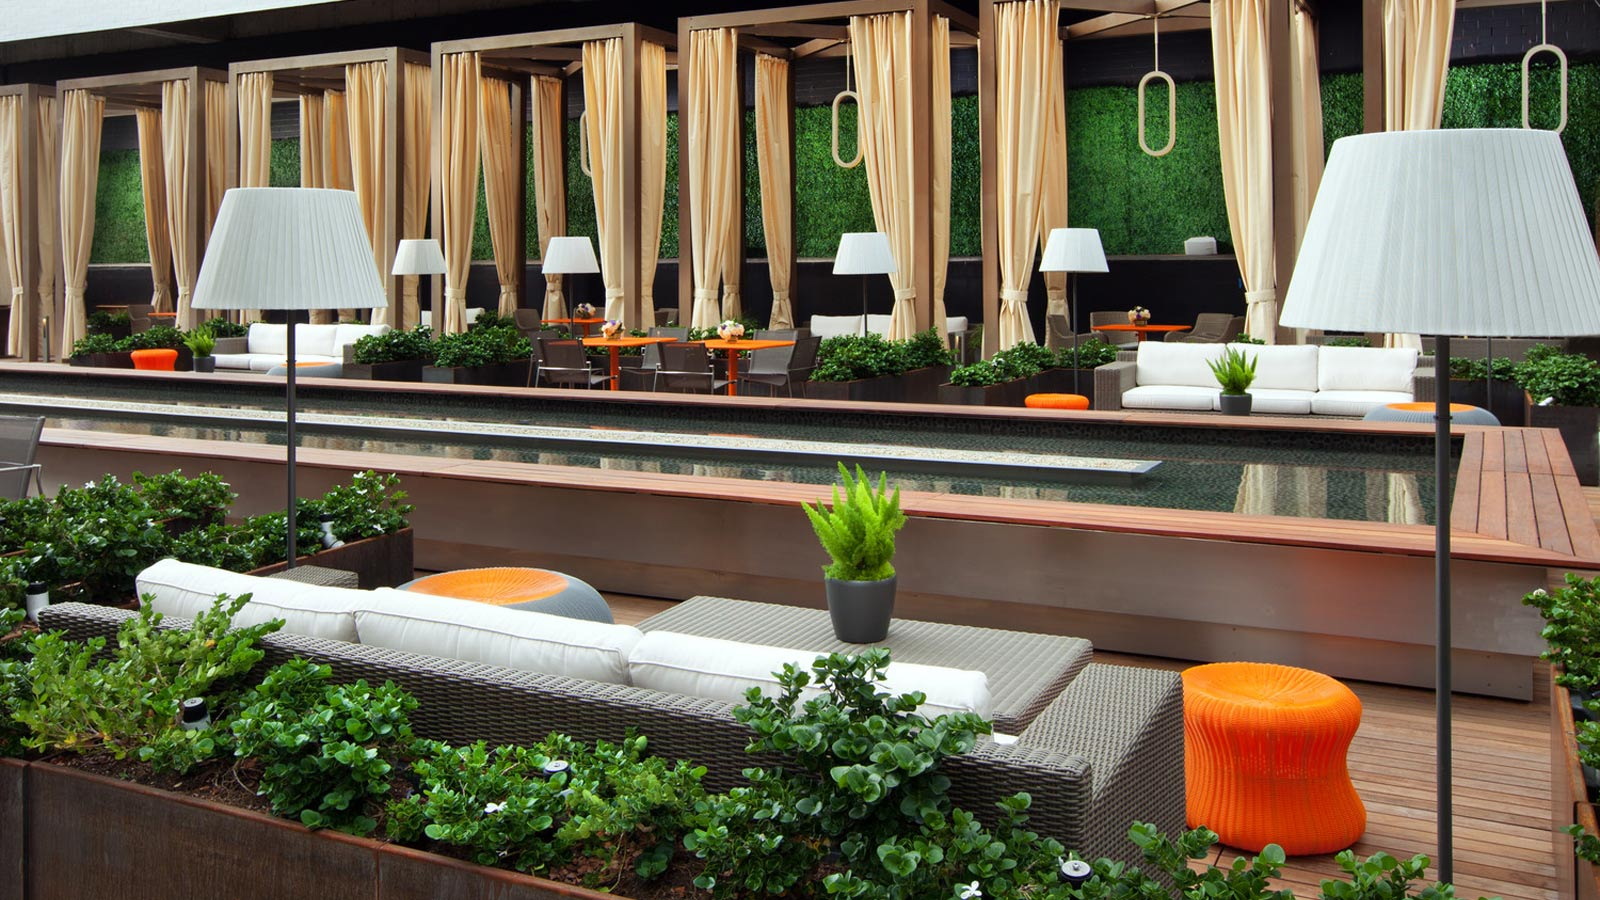 Los Angeles Meetings & Events - Outdoor Space